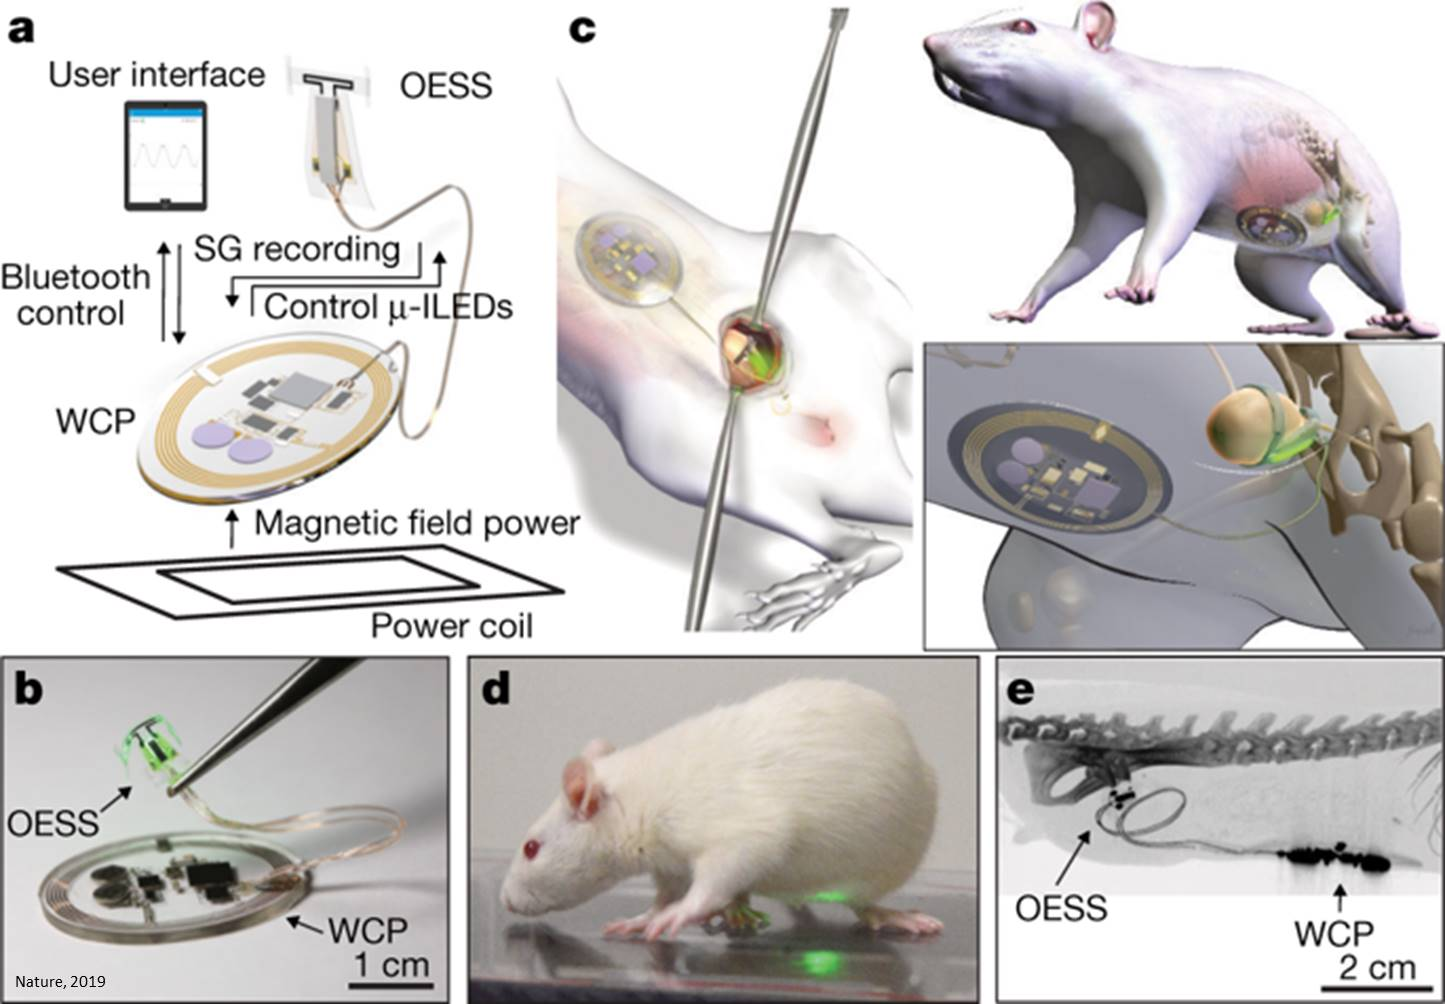 A wireless closed-loop system for optogenetic peripheral neuromodulation